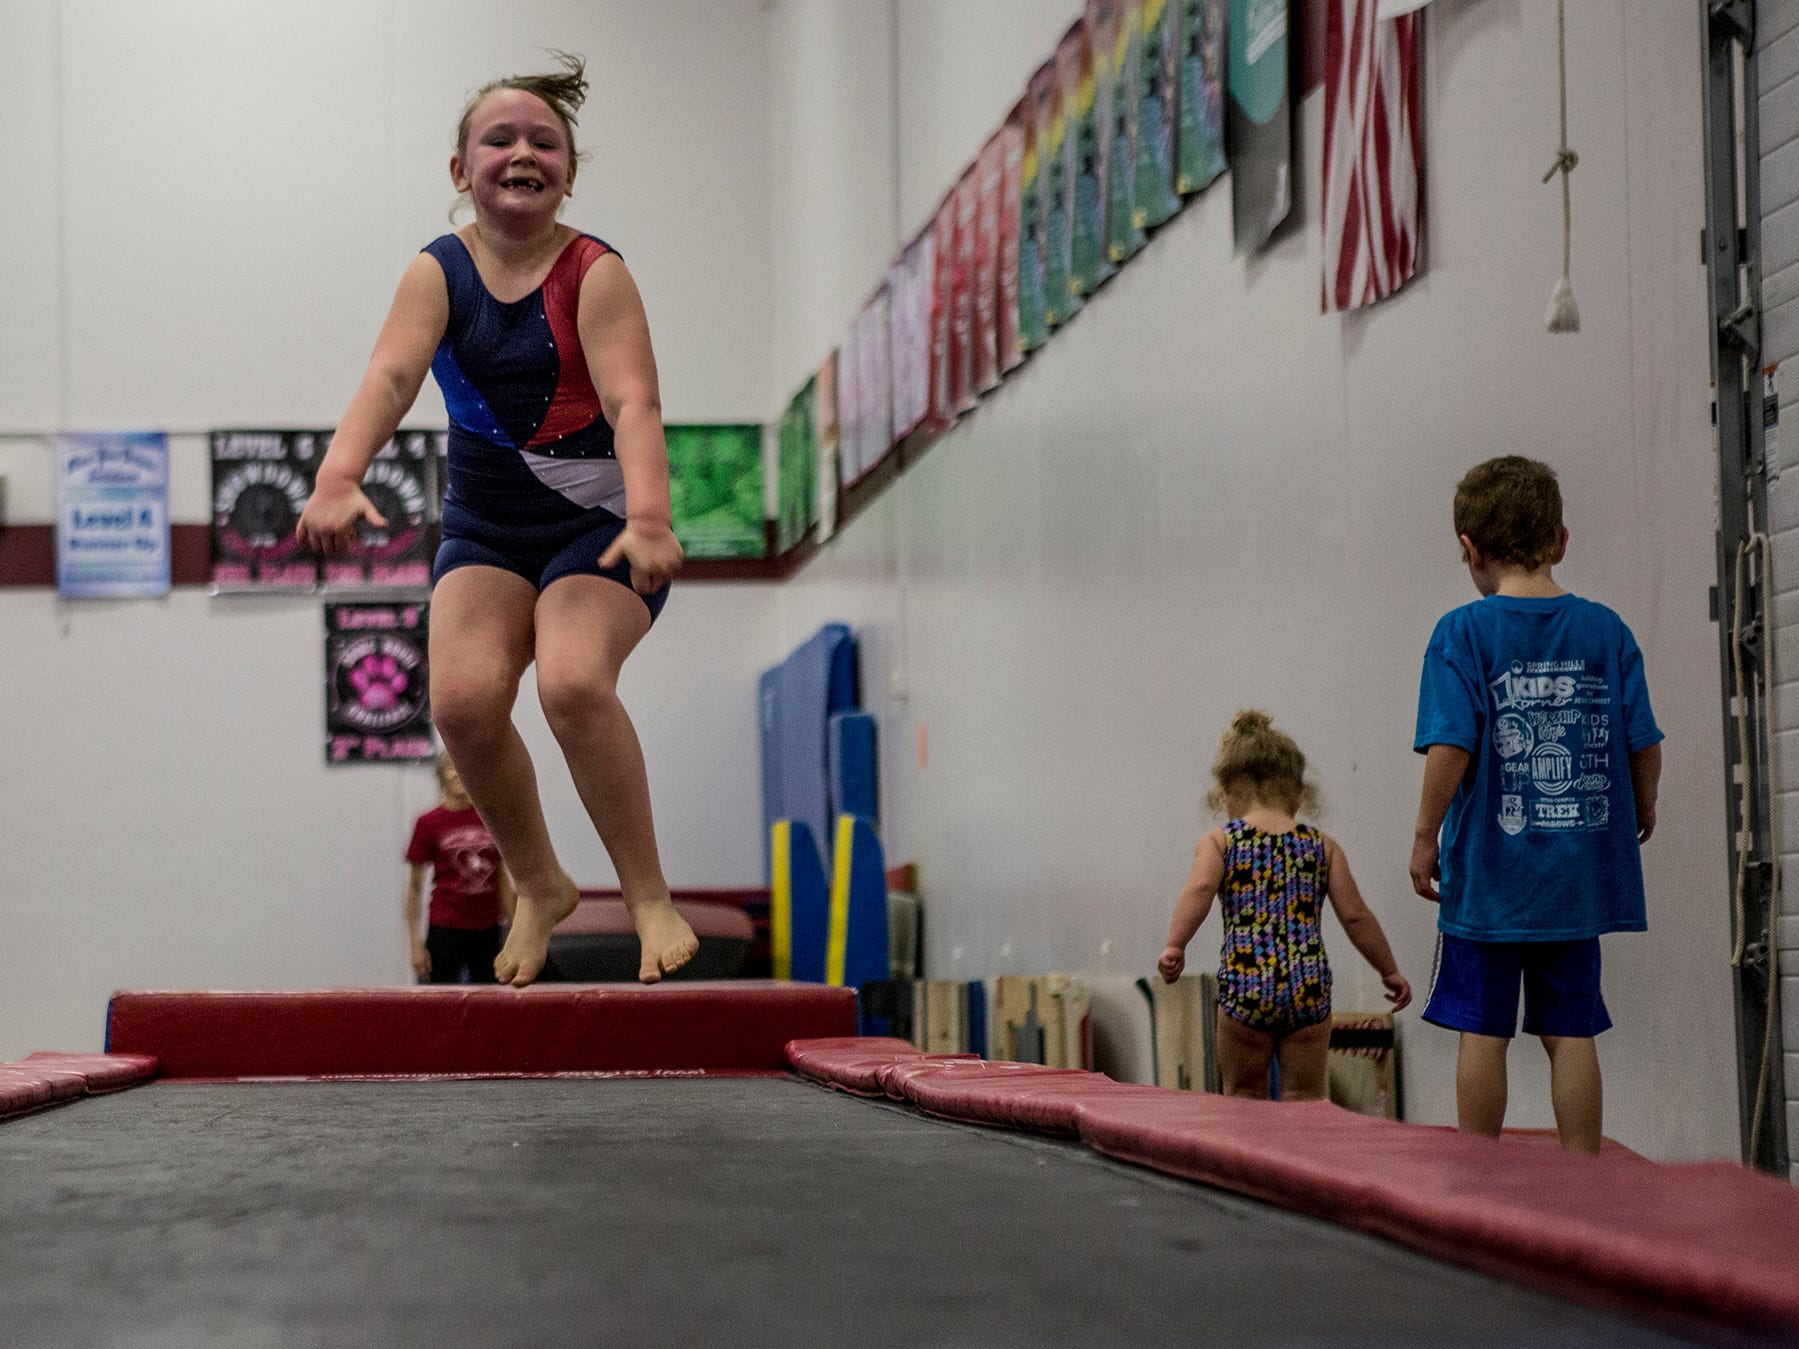 Alyssa Swick, 6, jumps across a track during an open gym for kids ages 3-6 at the Licking County YMCA. The YMCA will be holding a second preschool open gym Friday January 4th in the Mitchell Center. Prices are $15 for members and $25 for nonmembers, ages 3-6.